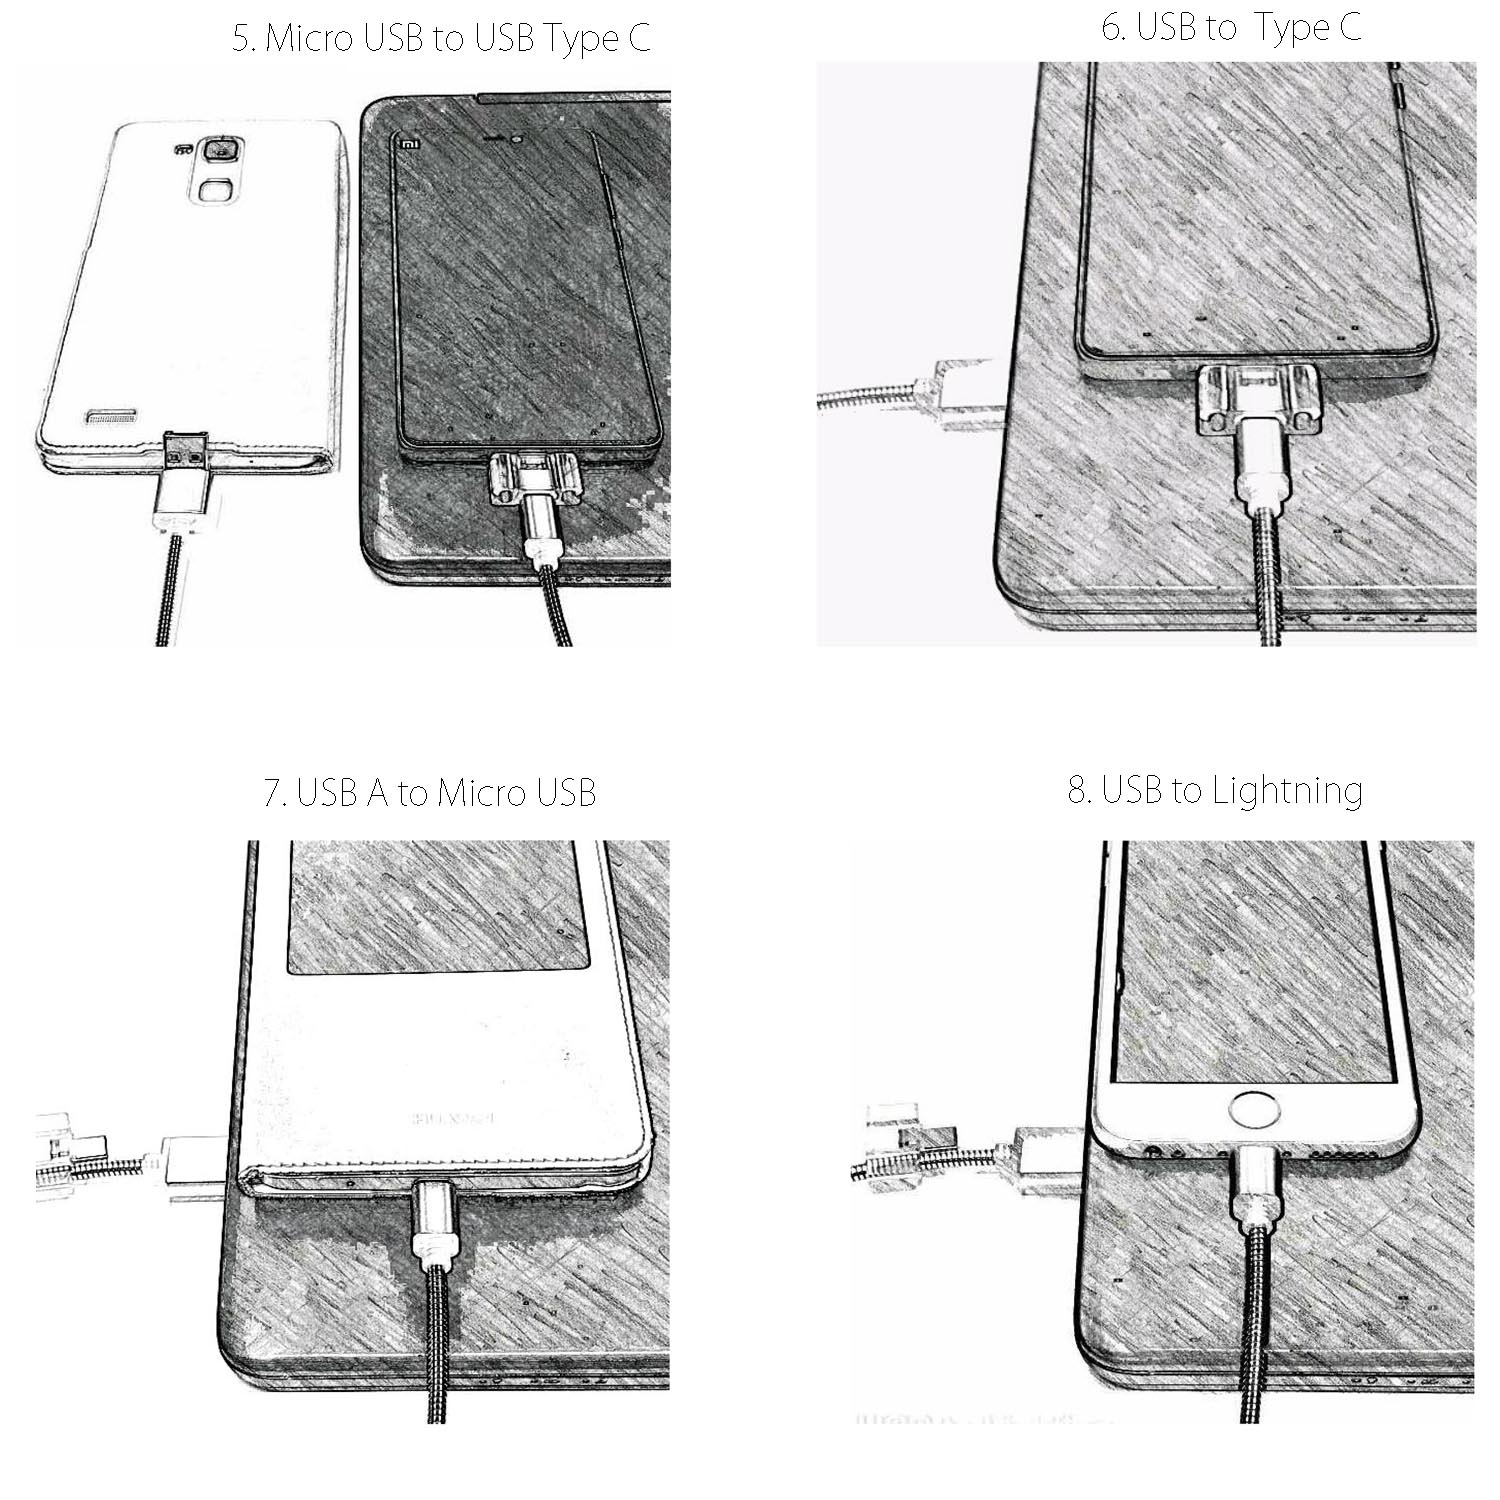 USB Type C Lightning Micro 8 in 1 Charging Cable 50cm Multiple Universal Charging Cable for iPhone iPad and Android Smartphone 14